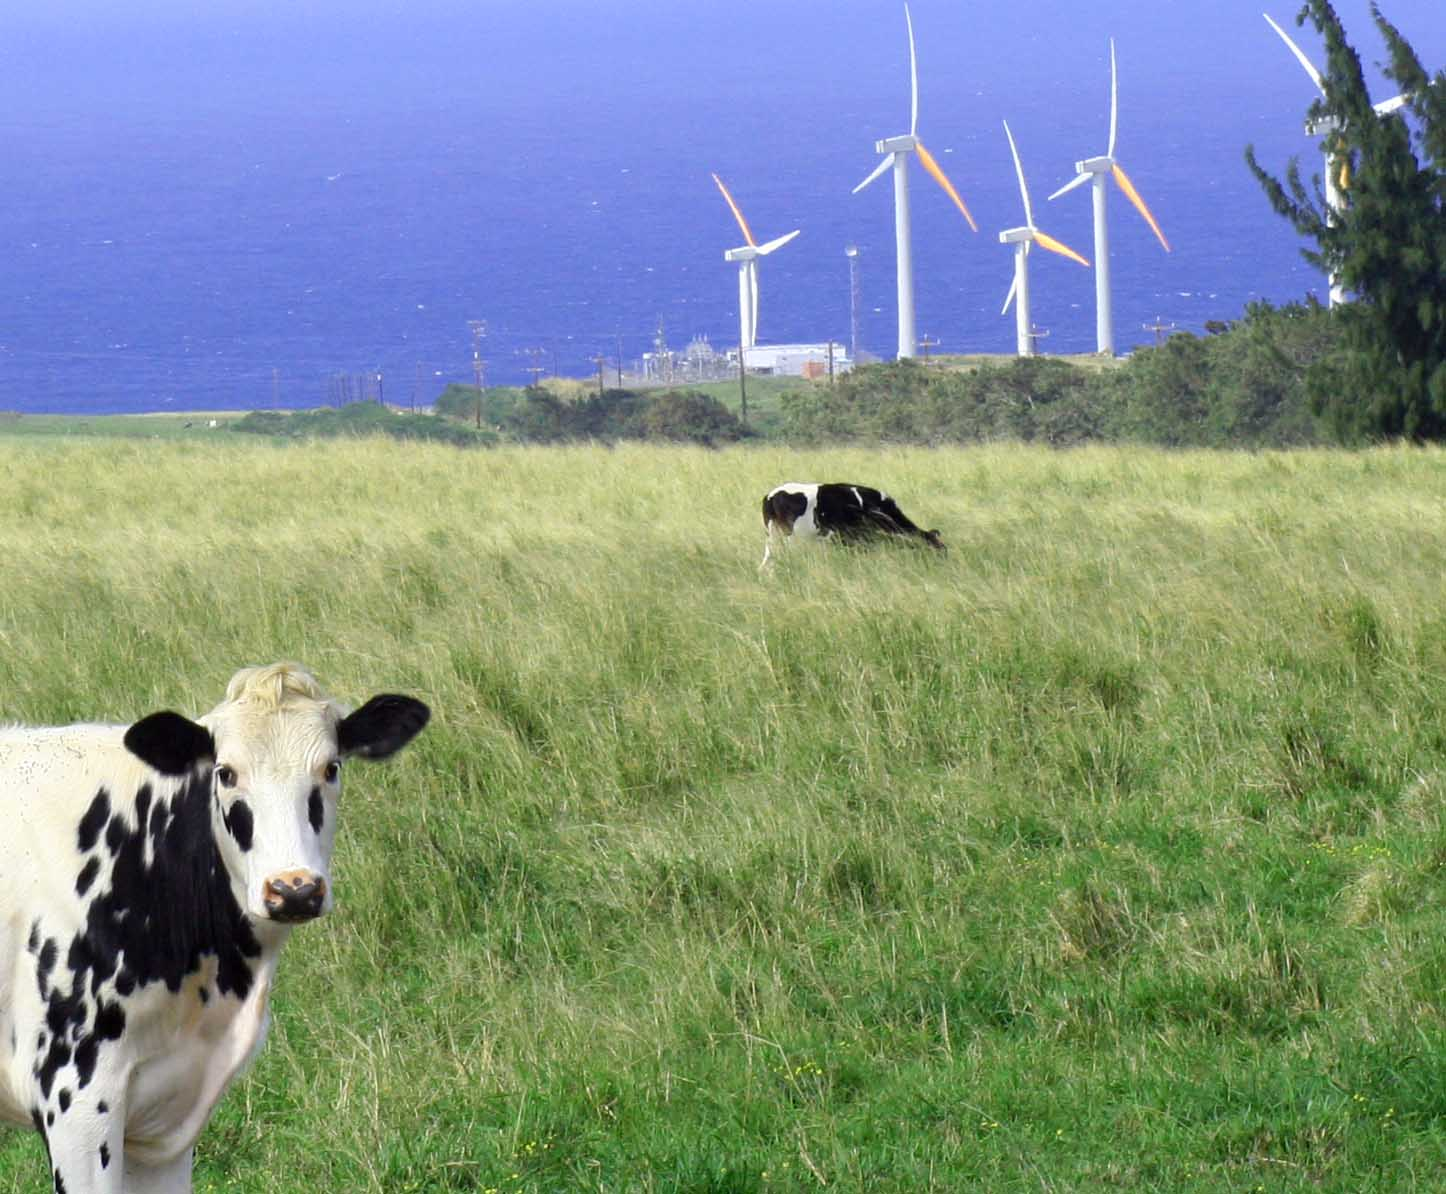 Wind Farm. Cows and wind turbines in pasture, ocean in background.